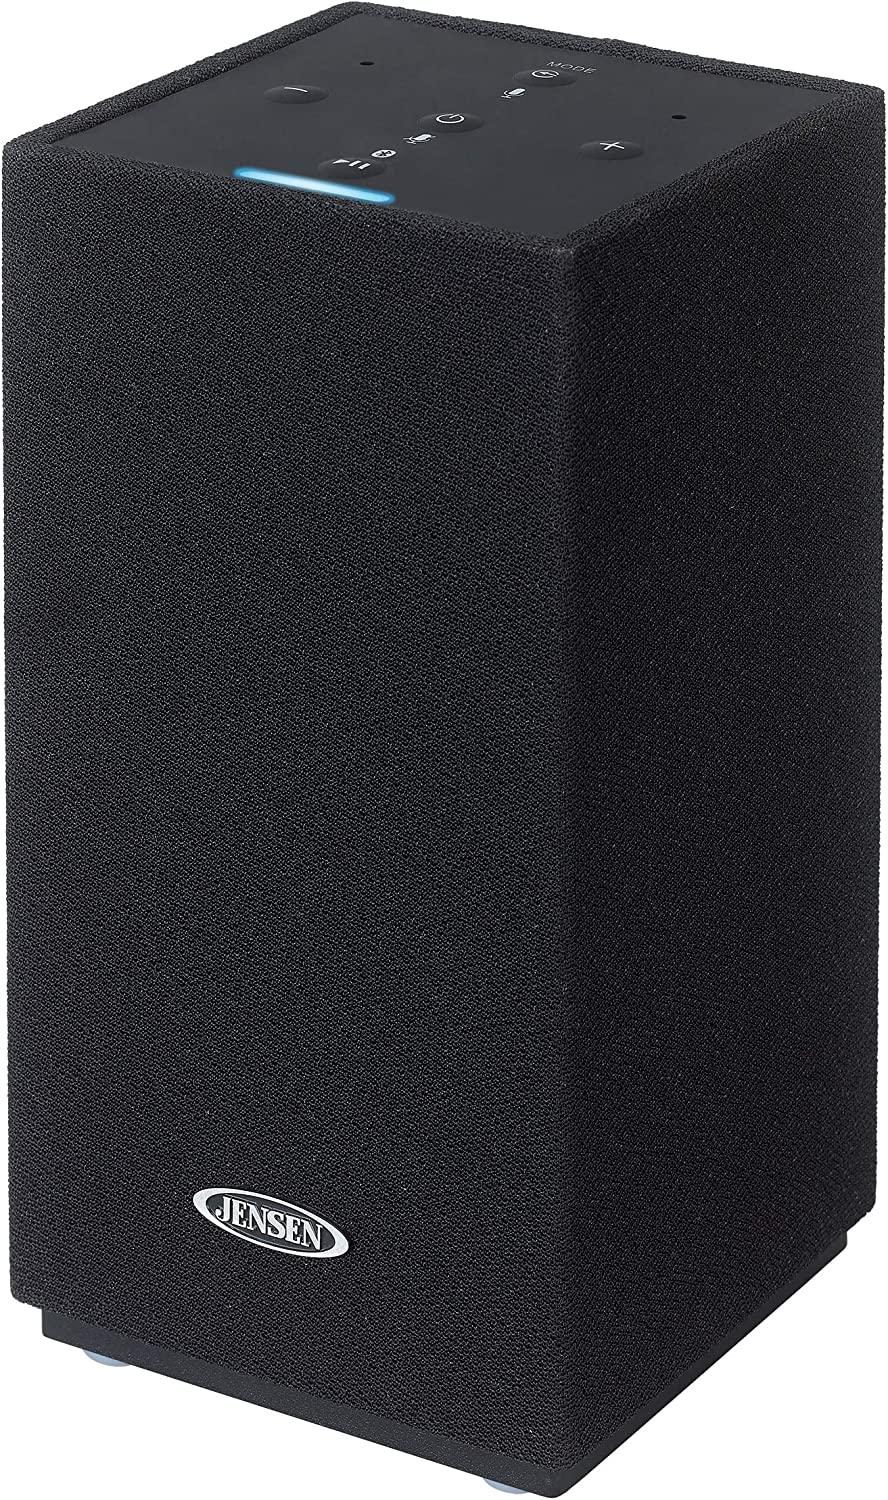 JENSEN JSB-550 Amazon Alexa-Enabled Bluetooth/Wi-Fi Wireless Stereo Smart Speaker,Black